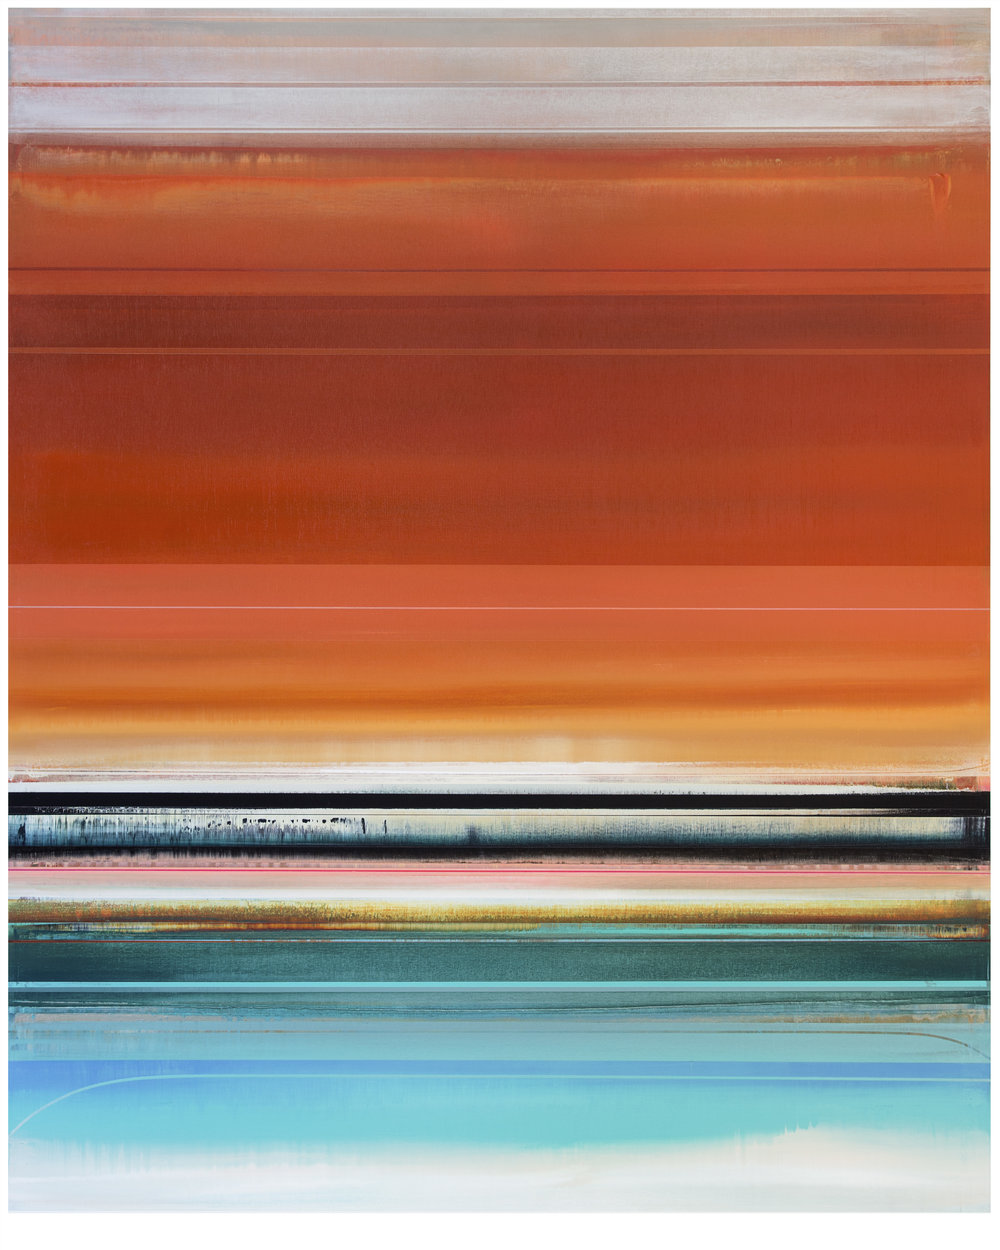 Micah Crandall-Bear, b.1980 (USA)  Title: Ventria  Dimension: 156.56 x 122.08 cm  Year: 2017